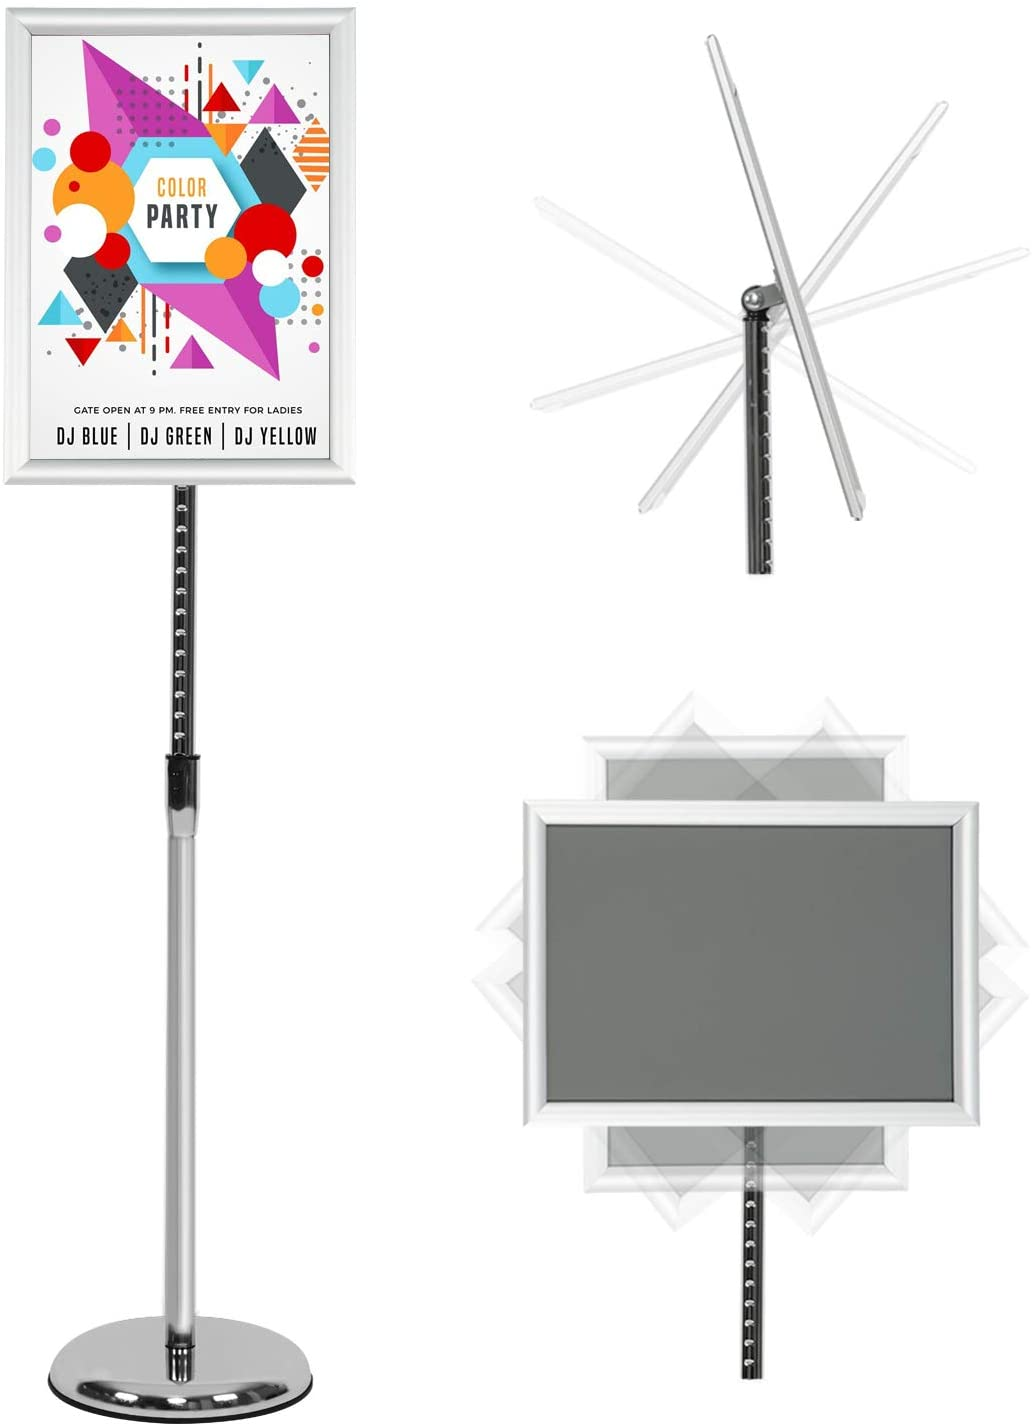 REALWAY Pedestal Poster Holder, Heavy Duty Floor Stand Sign Holder Poster Frame for 11x17 Inch, Vertical and Horizontal View Sign Displayed use for Restaurants Offices Schools etc. Silver